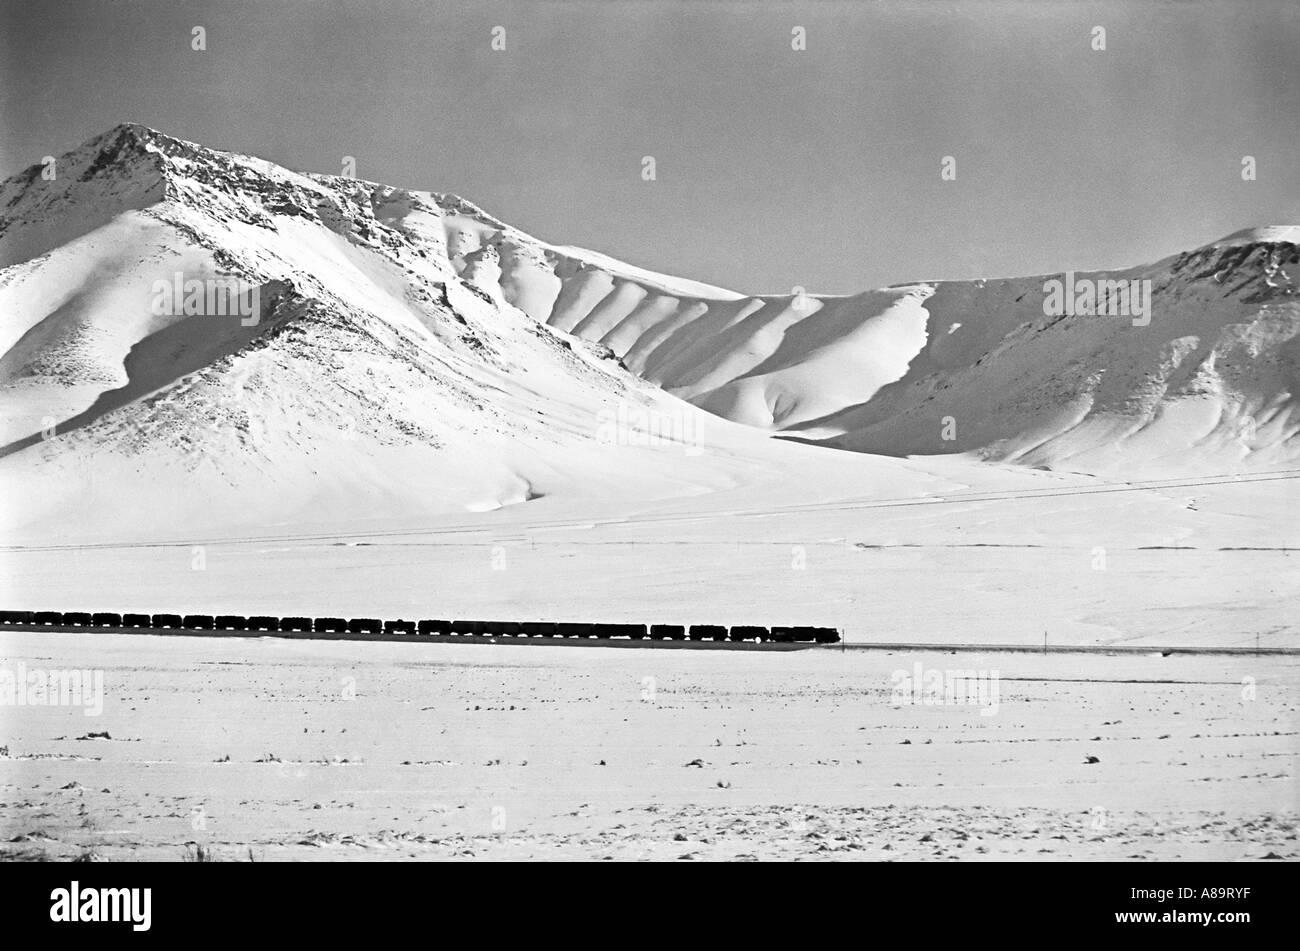 IRAN ARAK Train crossing a snowy plateau in the mountains of Iran Black and white dramatic landscape print - Stock Image